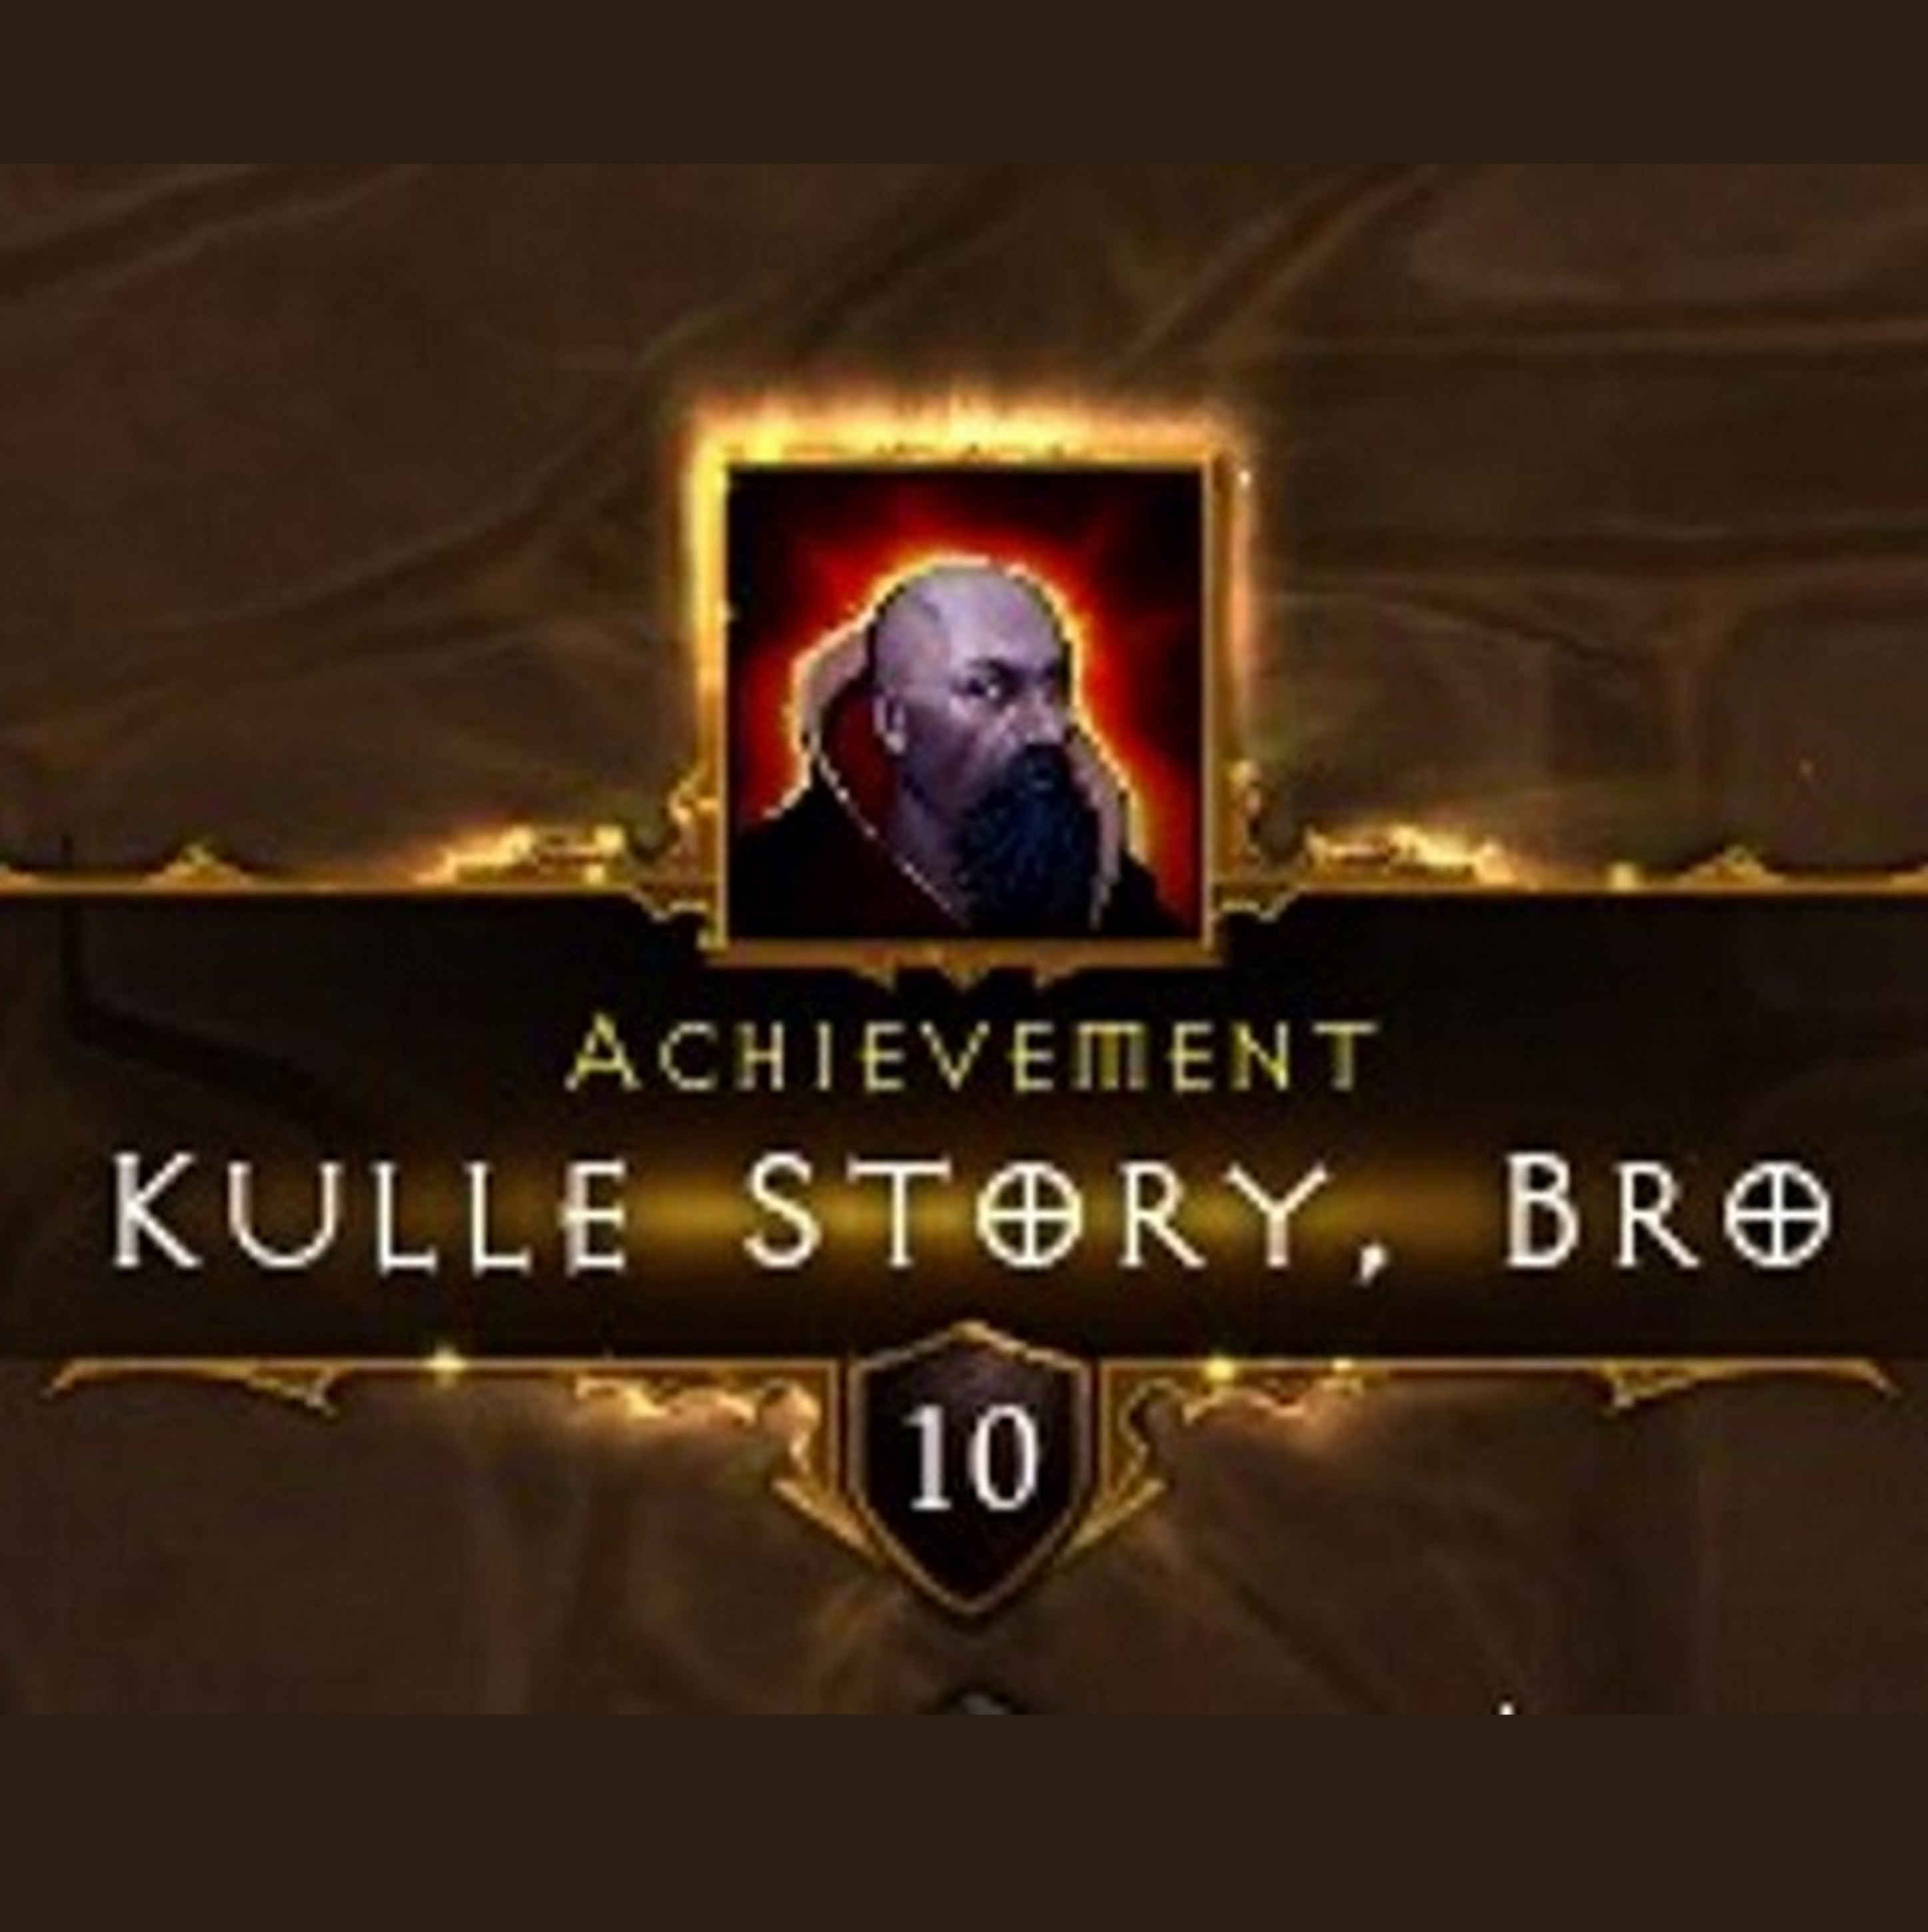 Kulle Story Bro - A Diablo 3 Podcast Episode 29